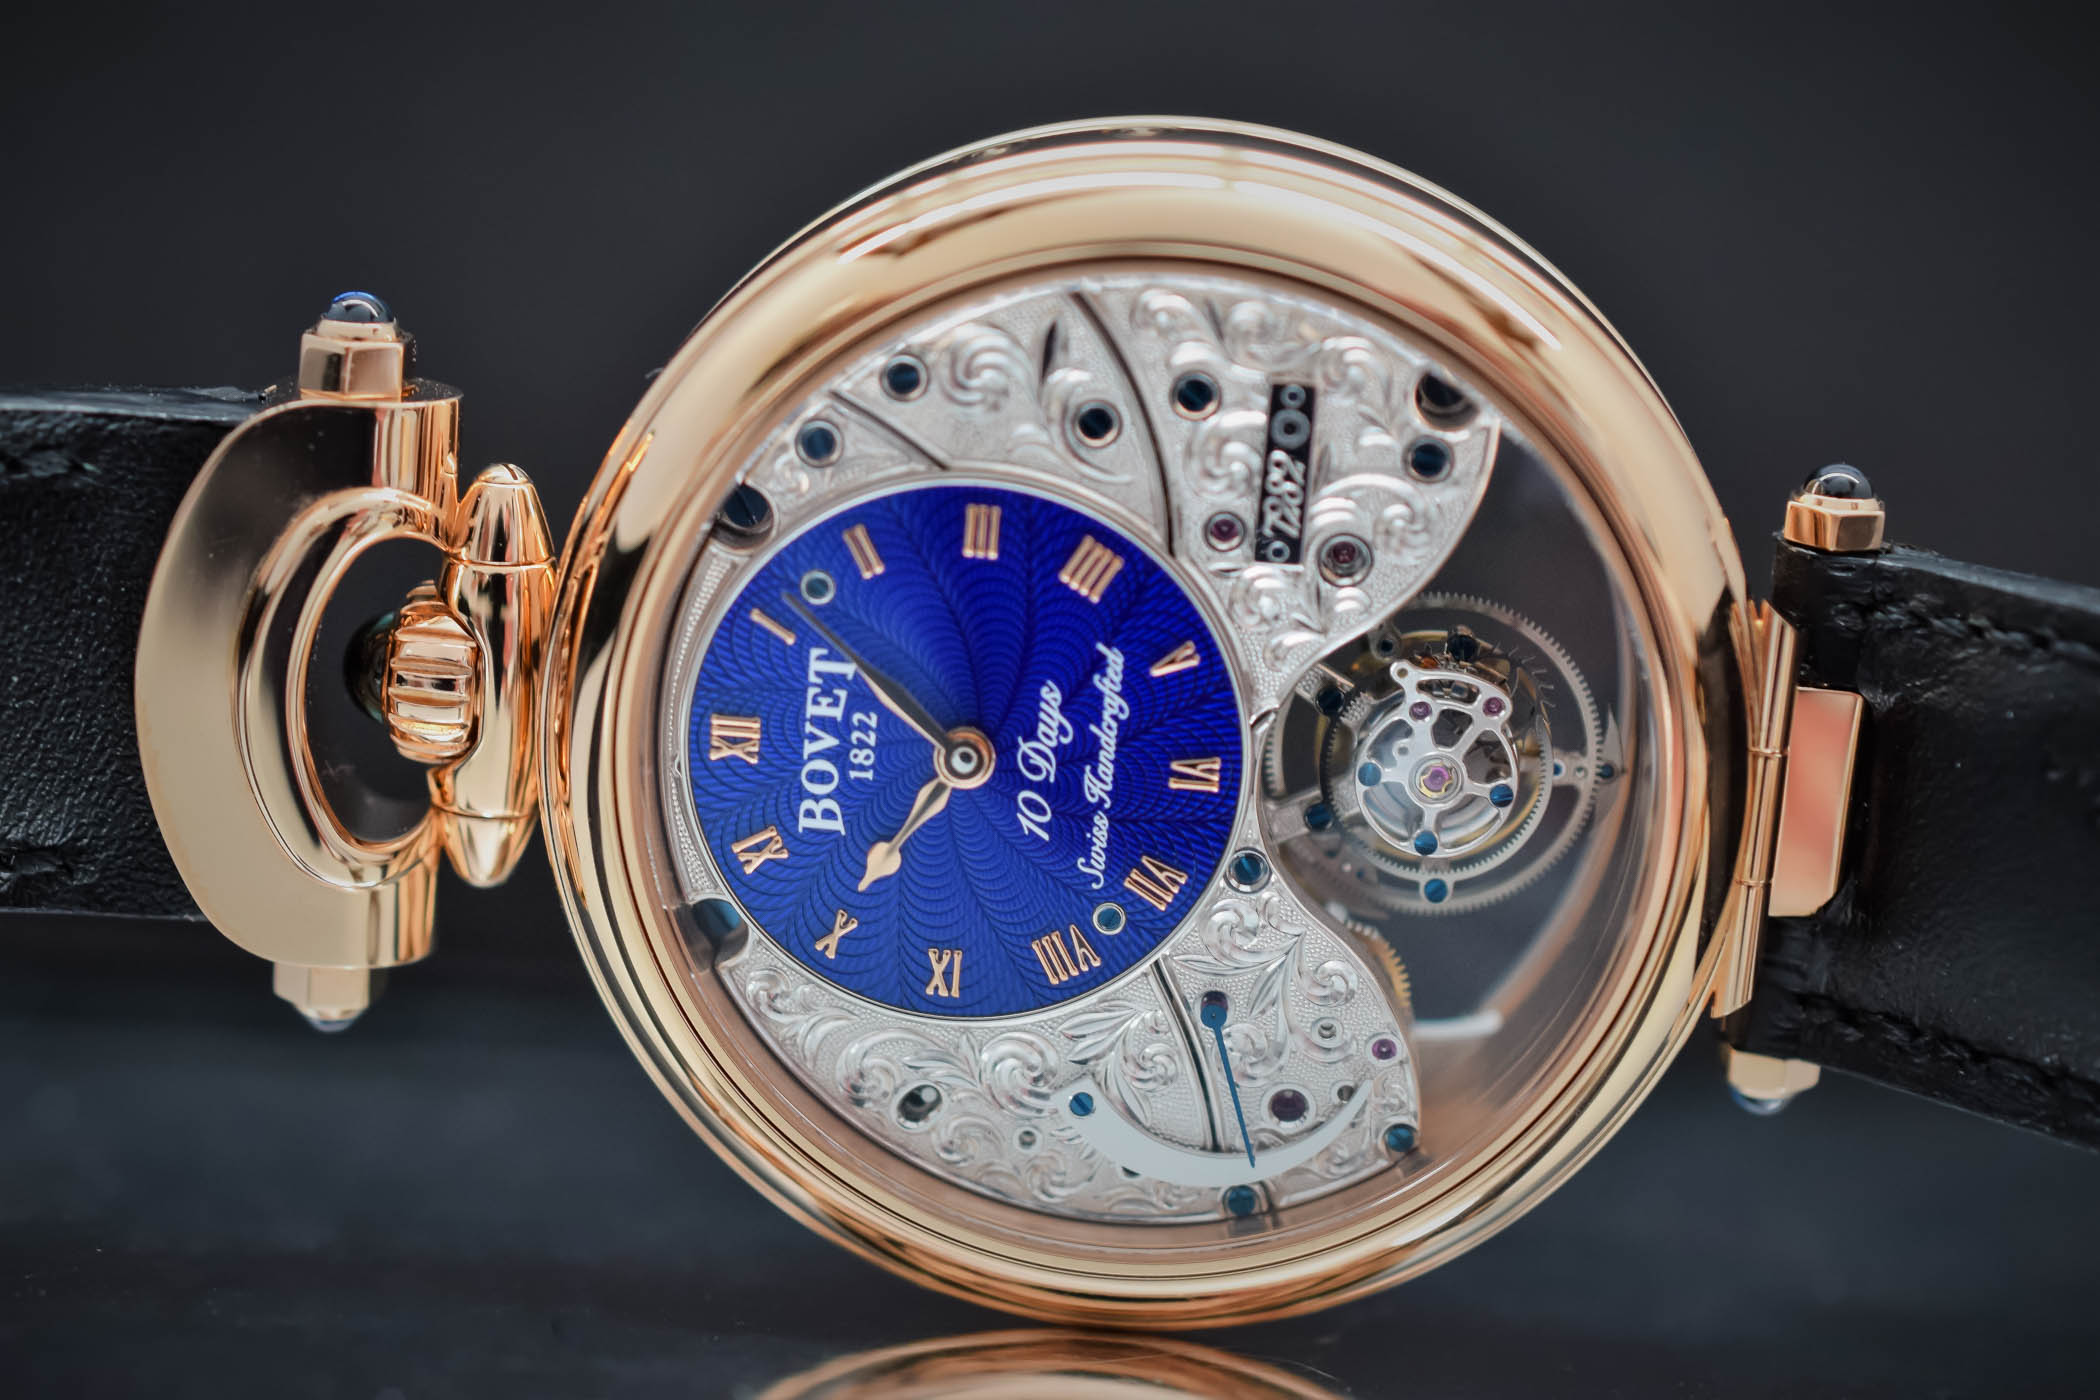 fleurier thirty new perpetuelle com bovet watchuseek watches collection unveils